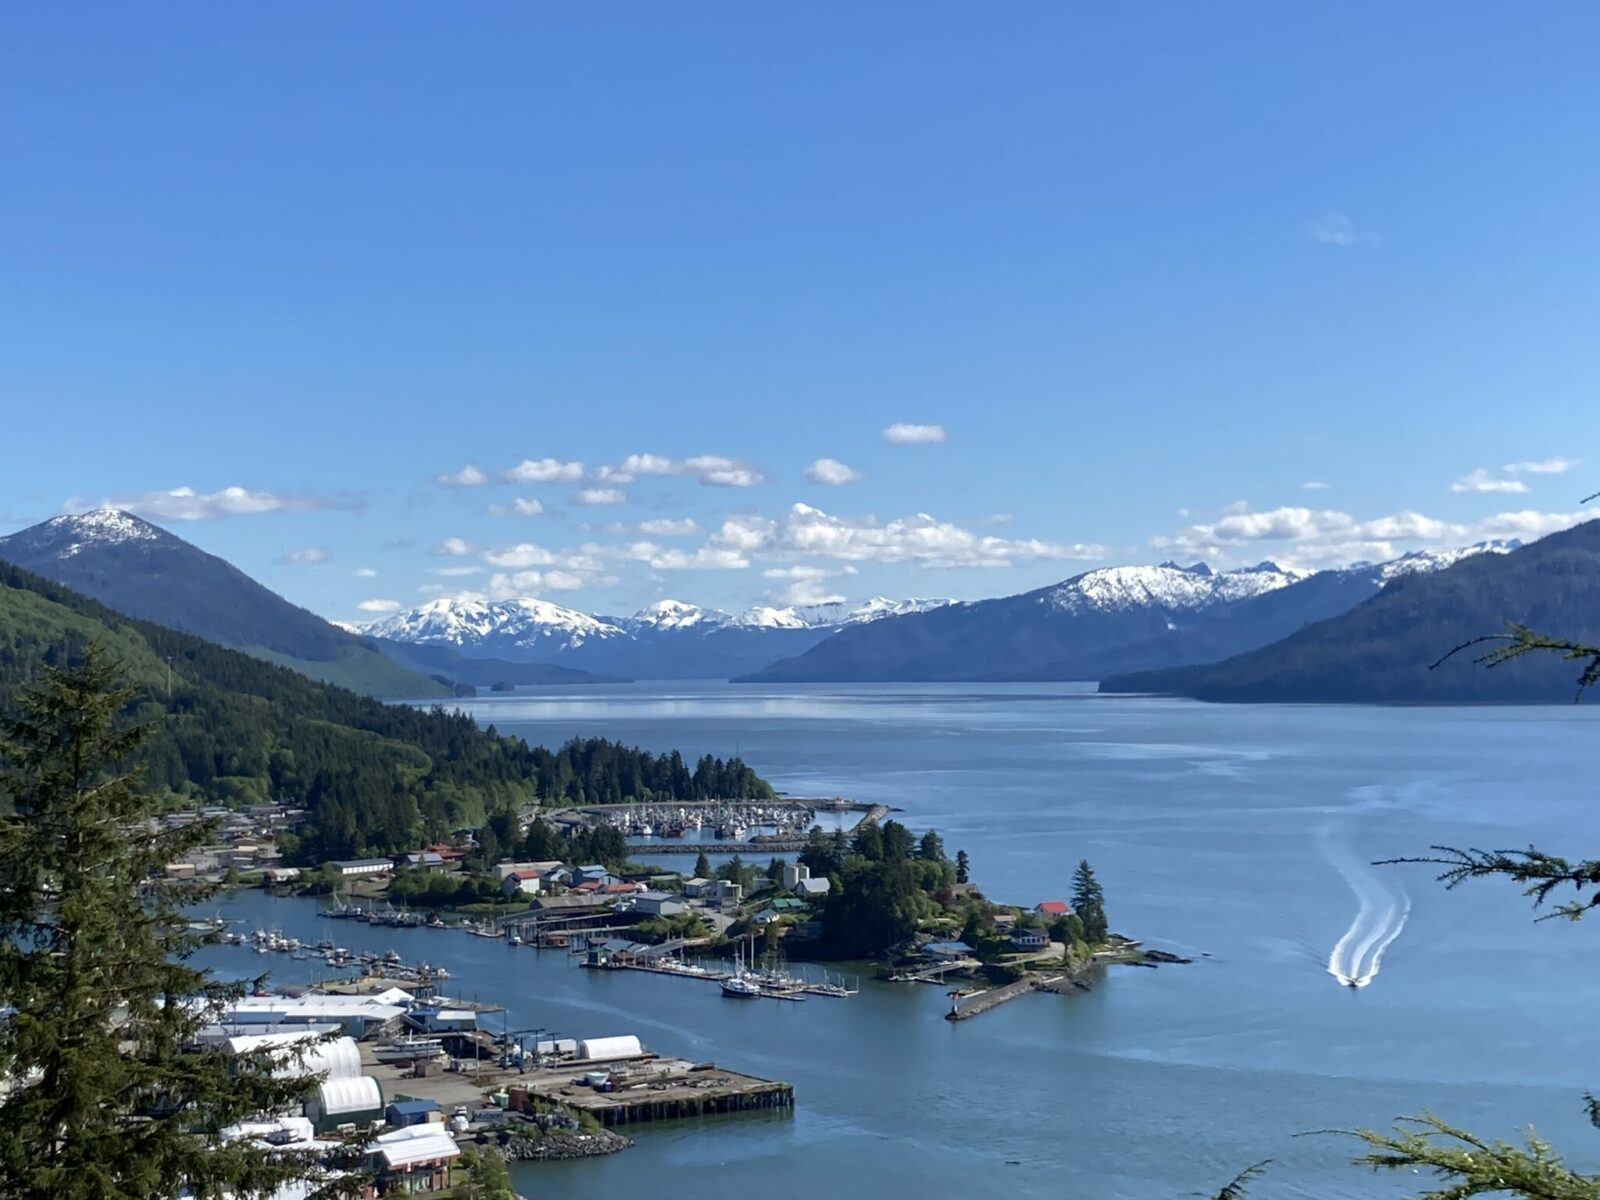 A view of Wrangell Alaska from the Mt Dewey Overlook. You can see several harbors in the town below through the trees and water and mountains in the distance.